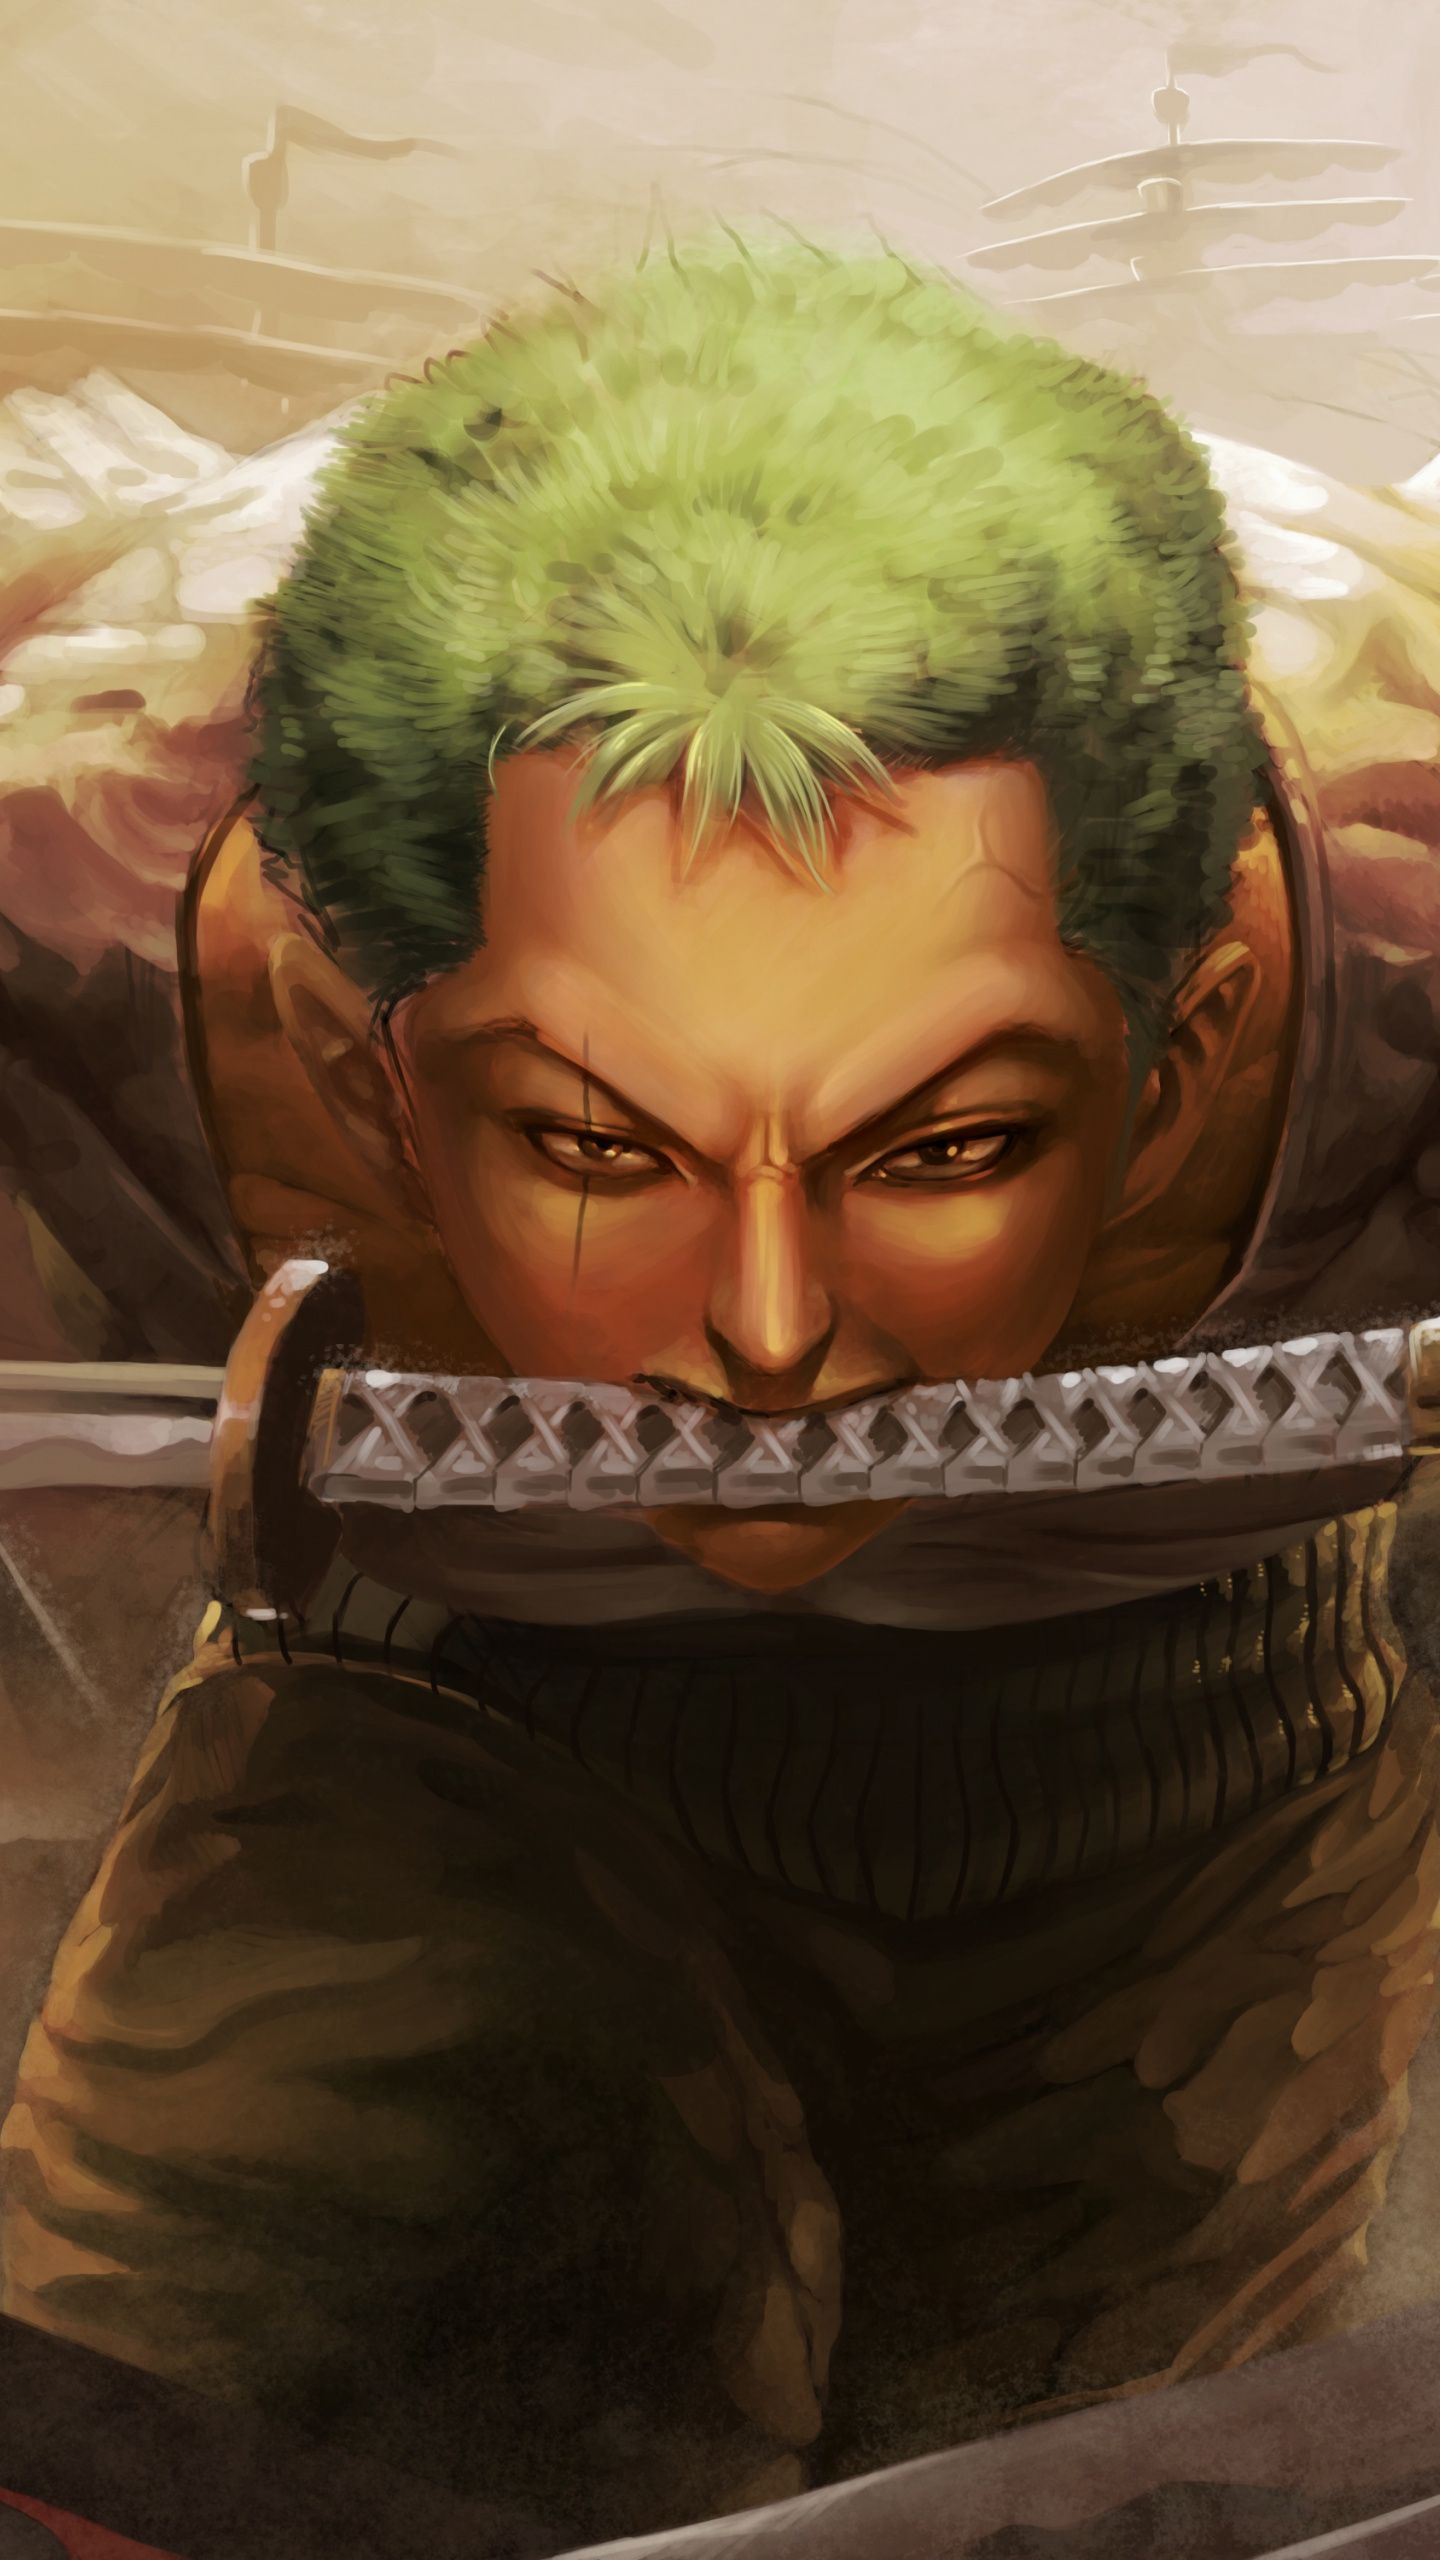 1440 X 2560 Wallpaper One Piece Download 1440x2560 Wallpaper Roronoa Zoro One Piece Katana Portra In 2020 Hd Anime Wallpapers Trafalgar Law Wallpapers Hd Backgrounds